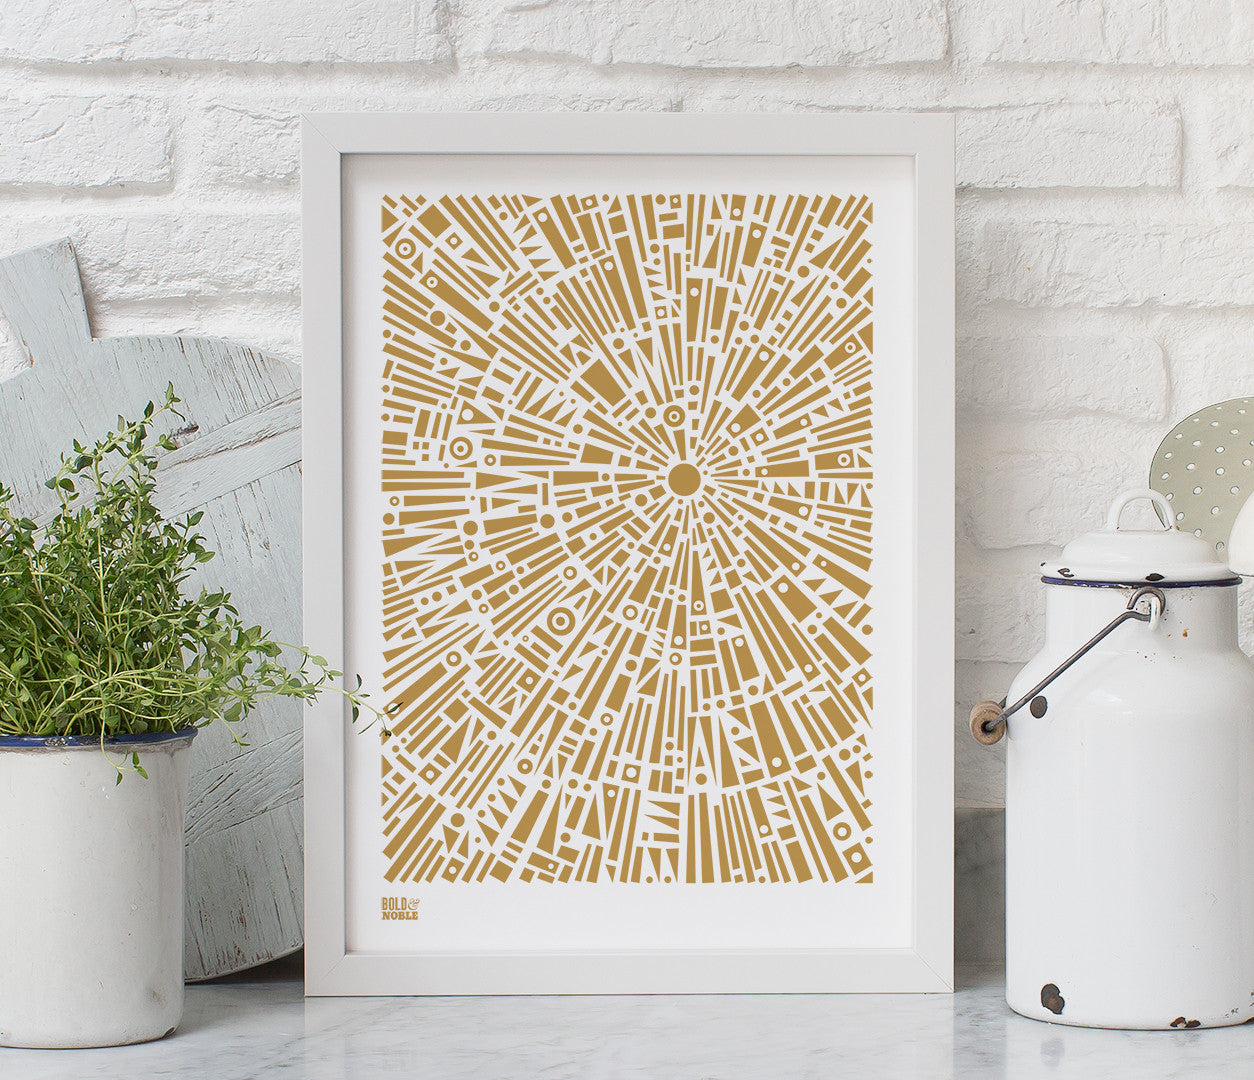 Pictures and Wall Art, Screen Printed Morning Light in Bronze